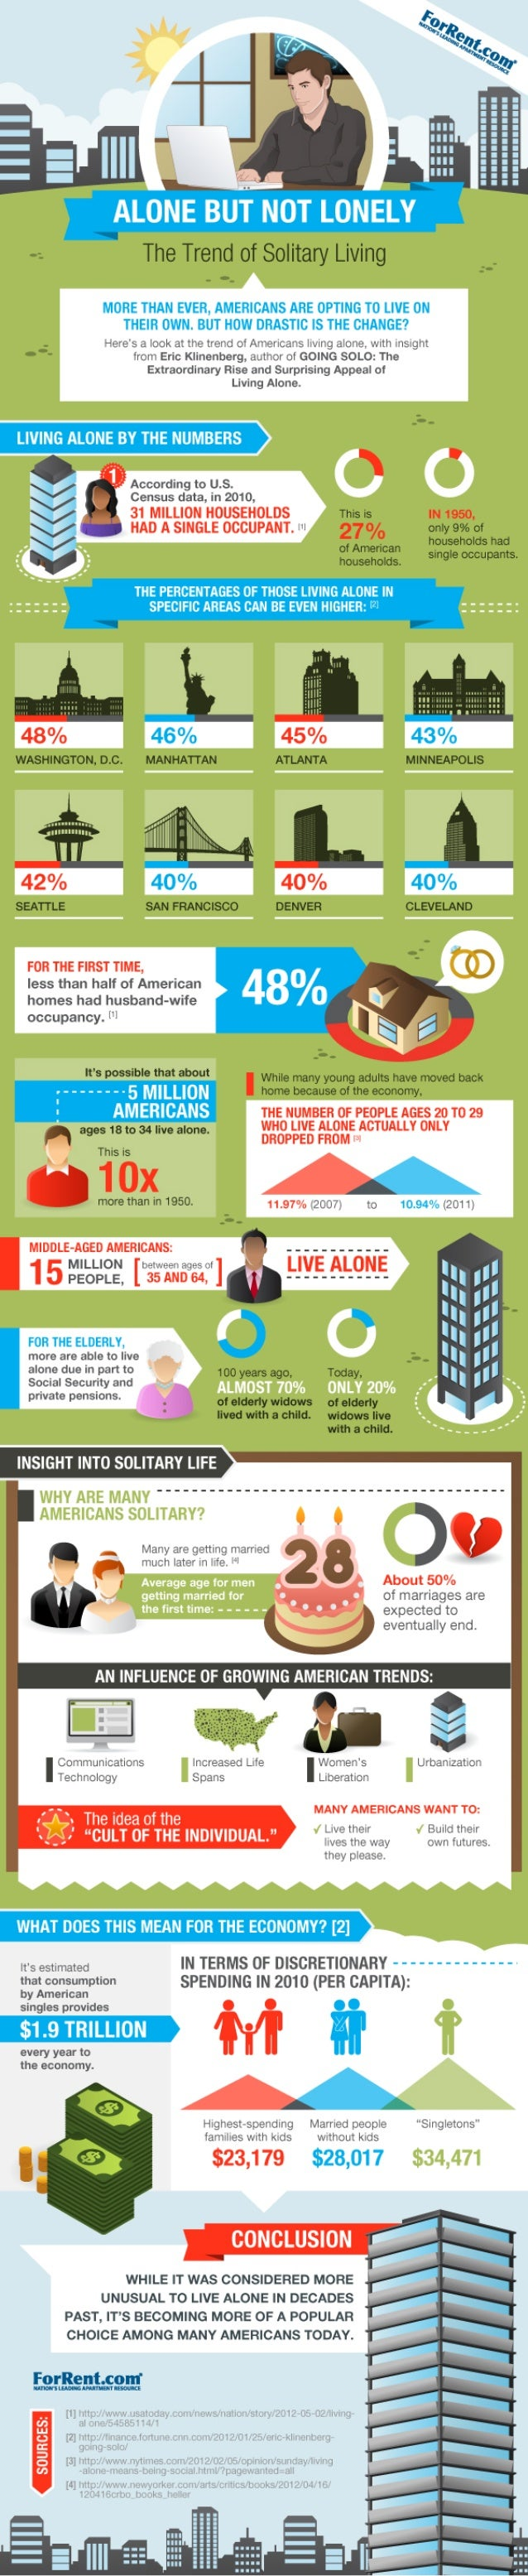 Alone but not lonely - The Trend of Solitary Living